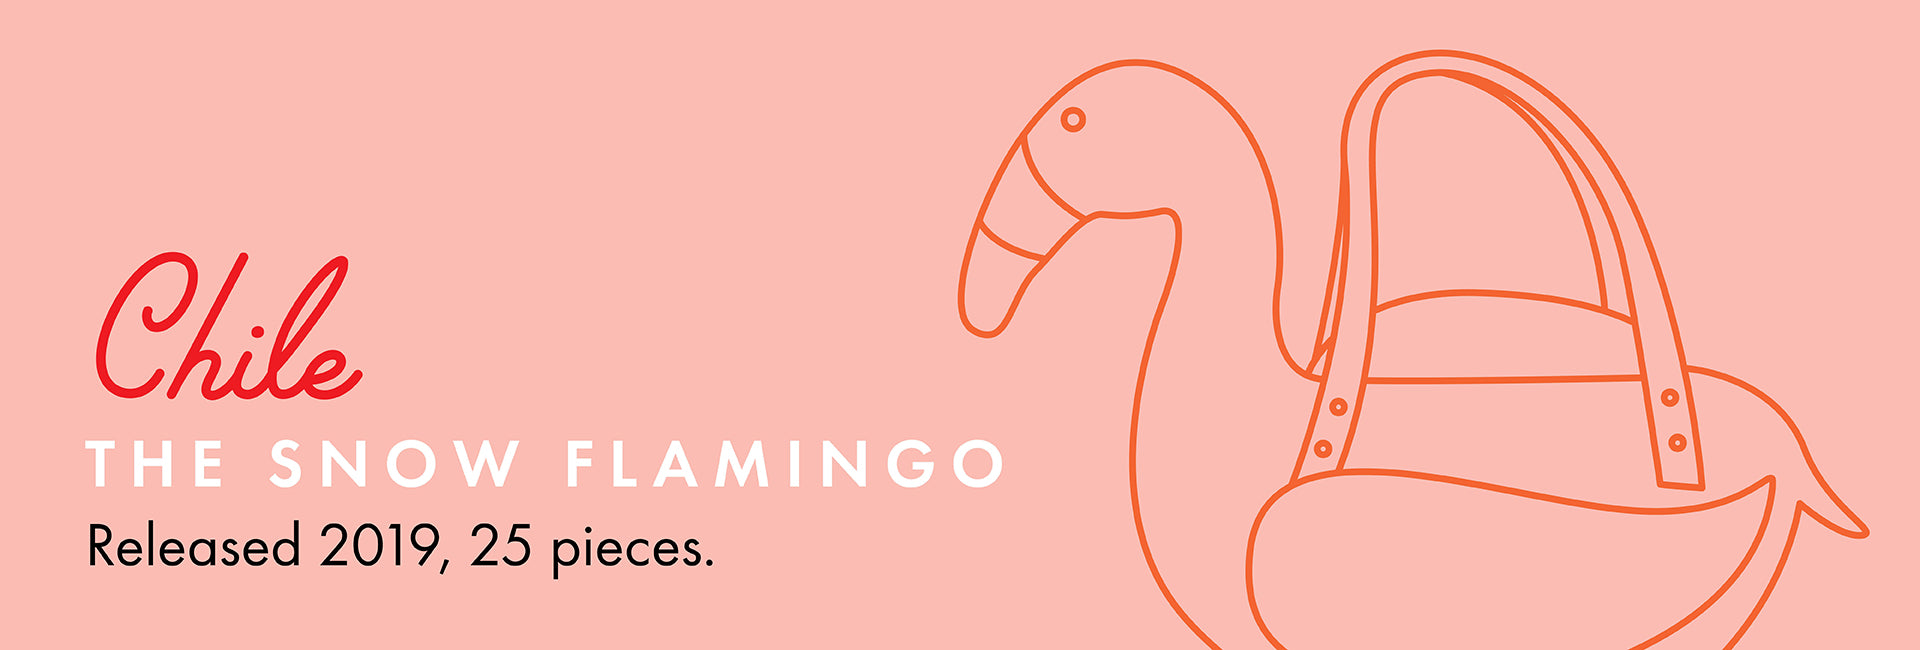 Chile the snow flamingo. Released 2019, 25 pieces.